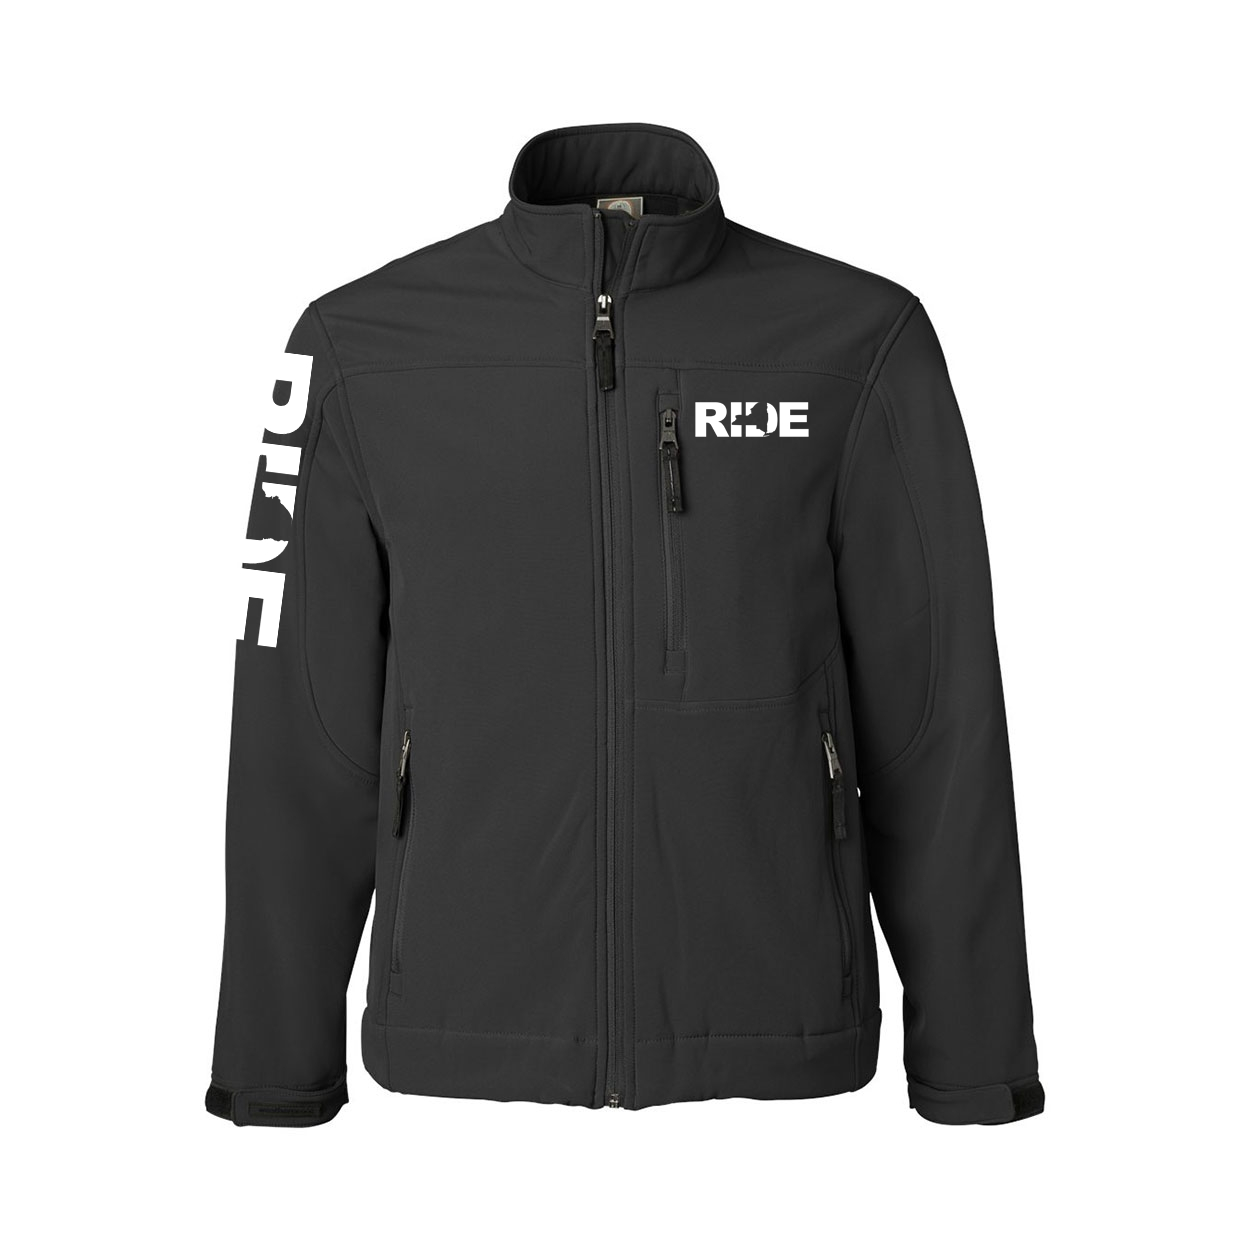 Ride New York Classic Soft Shell Weatherproof Jacket